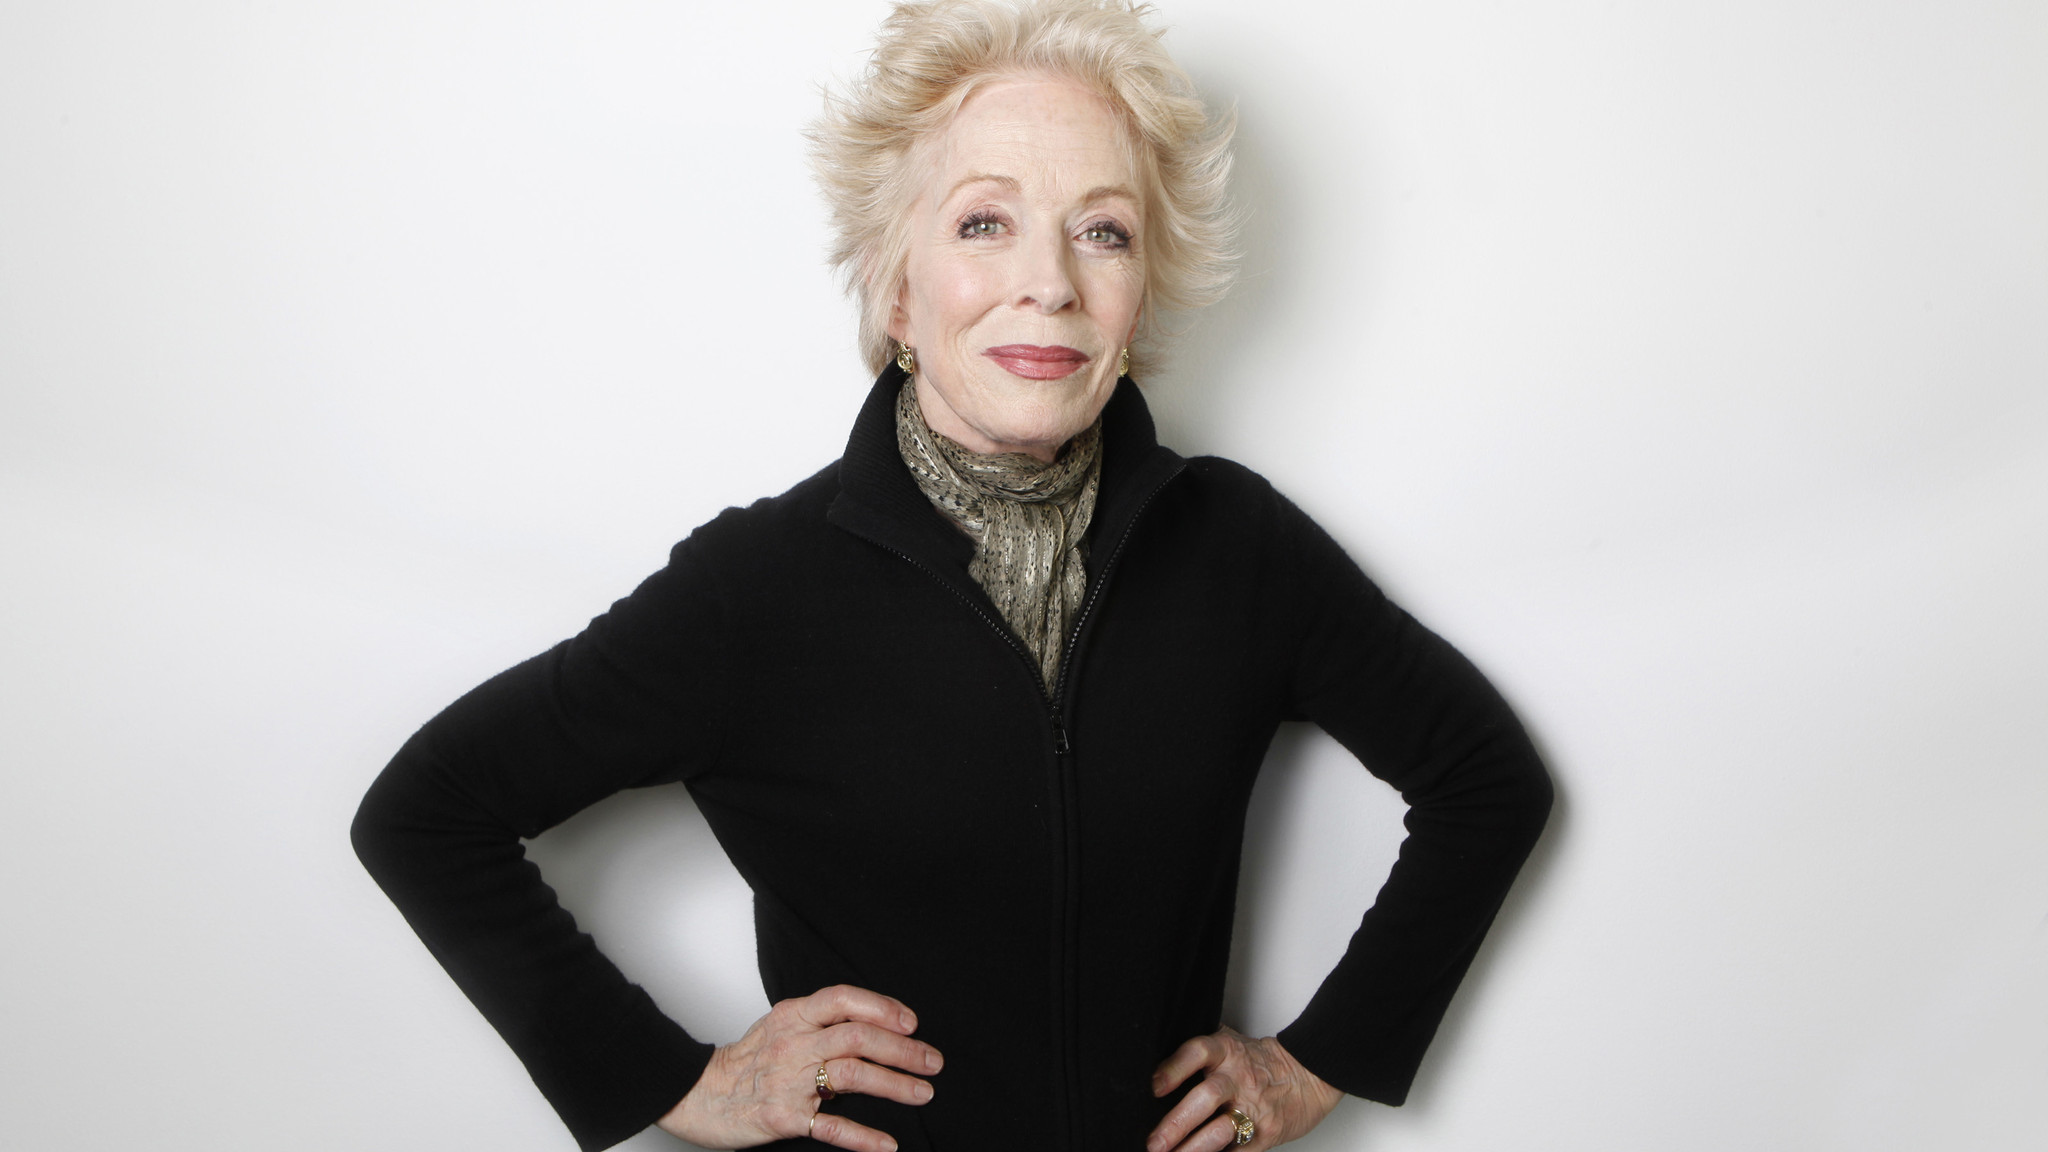 holland taylor instagramholland taylor young, holland taylor age, holland taylor imdb, holland taylor husband, holland taylor insta, holland taylor sarah paulson, holland taylor instagram, holland taylor wiki, holland taylor astrotheme, holland taylor, holland taylor net worth, holland taylor twitter, holland taylor and sarah paulson relationship, holland taylor feet, holland taylor bio, holland taylor 2015, holland taylor on charlie sheen, holland taylor legally blonde, holland taylor daughter, holland taylor married